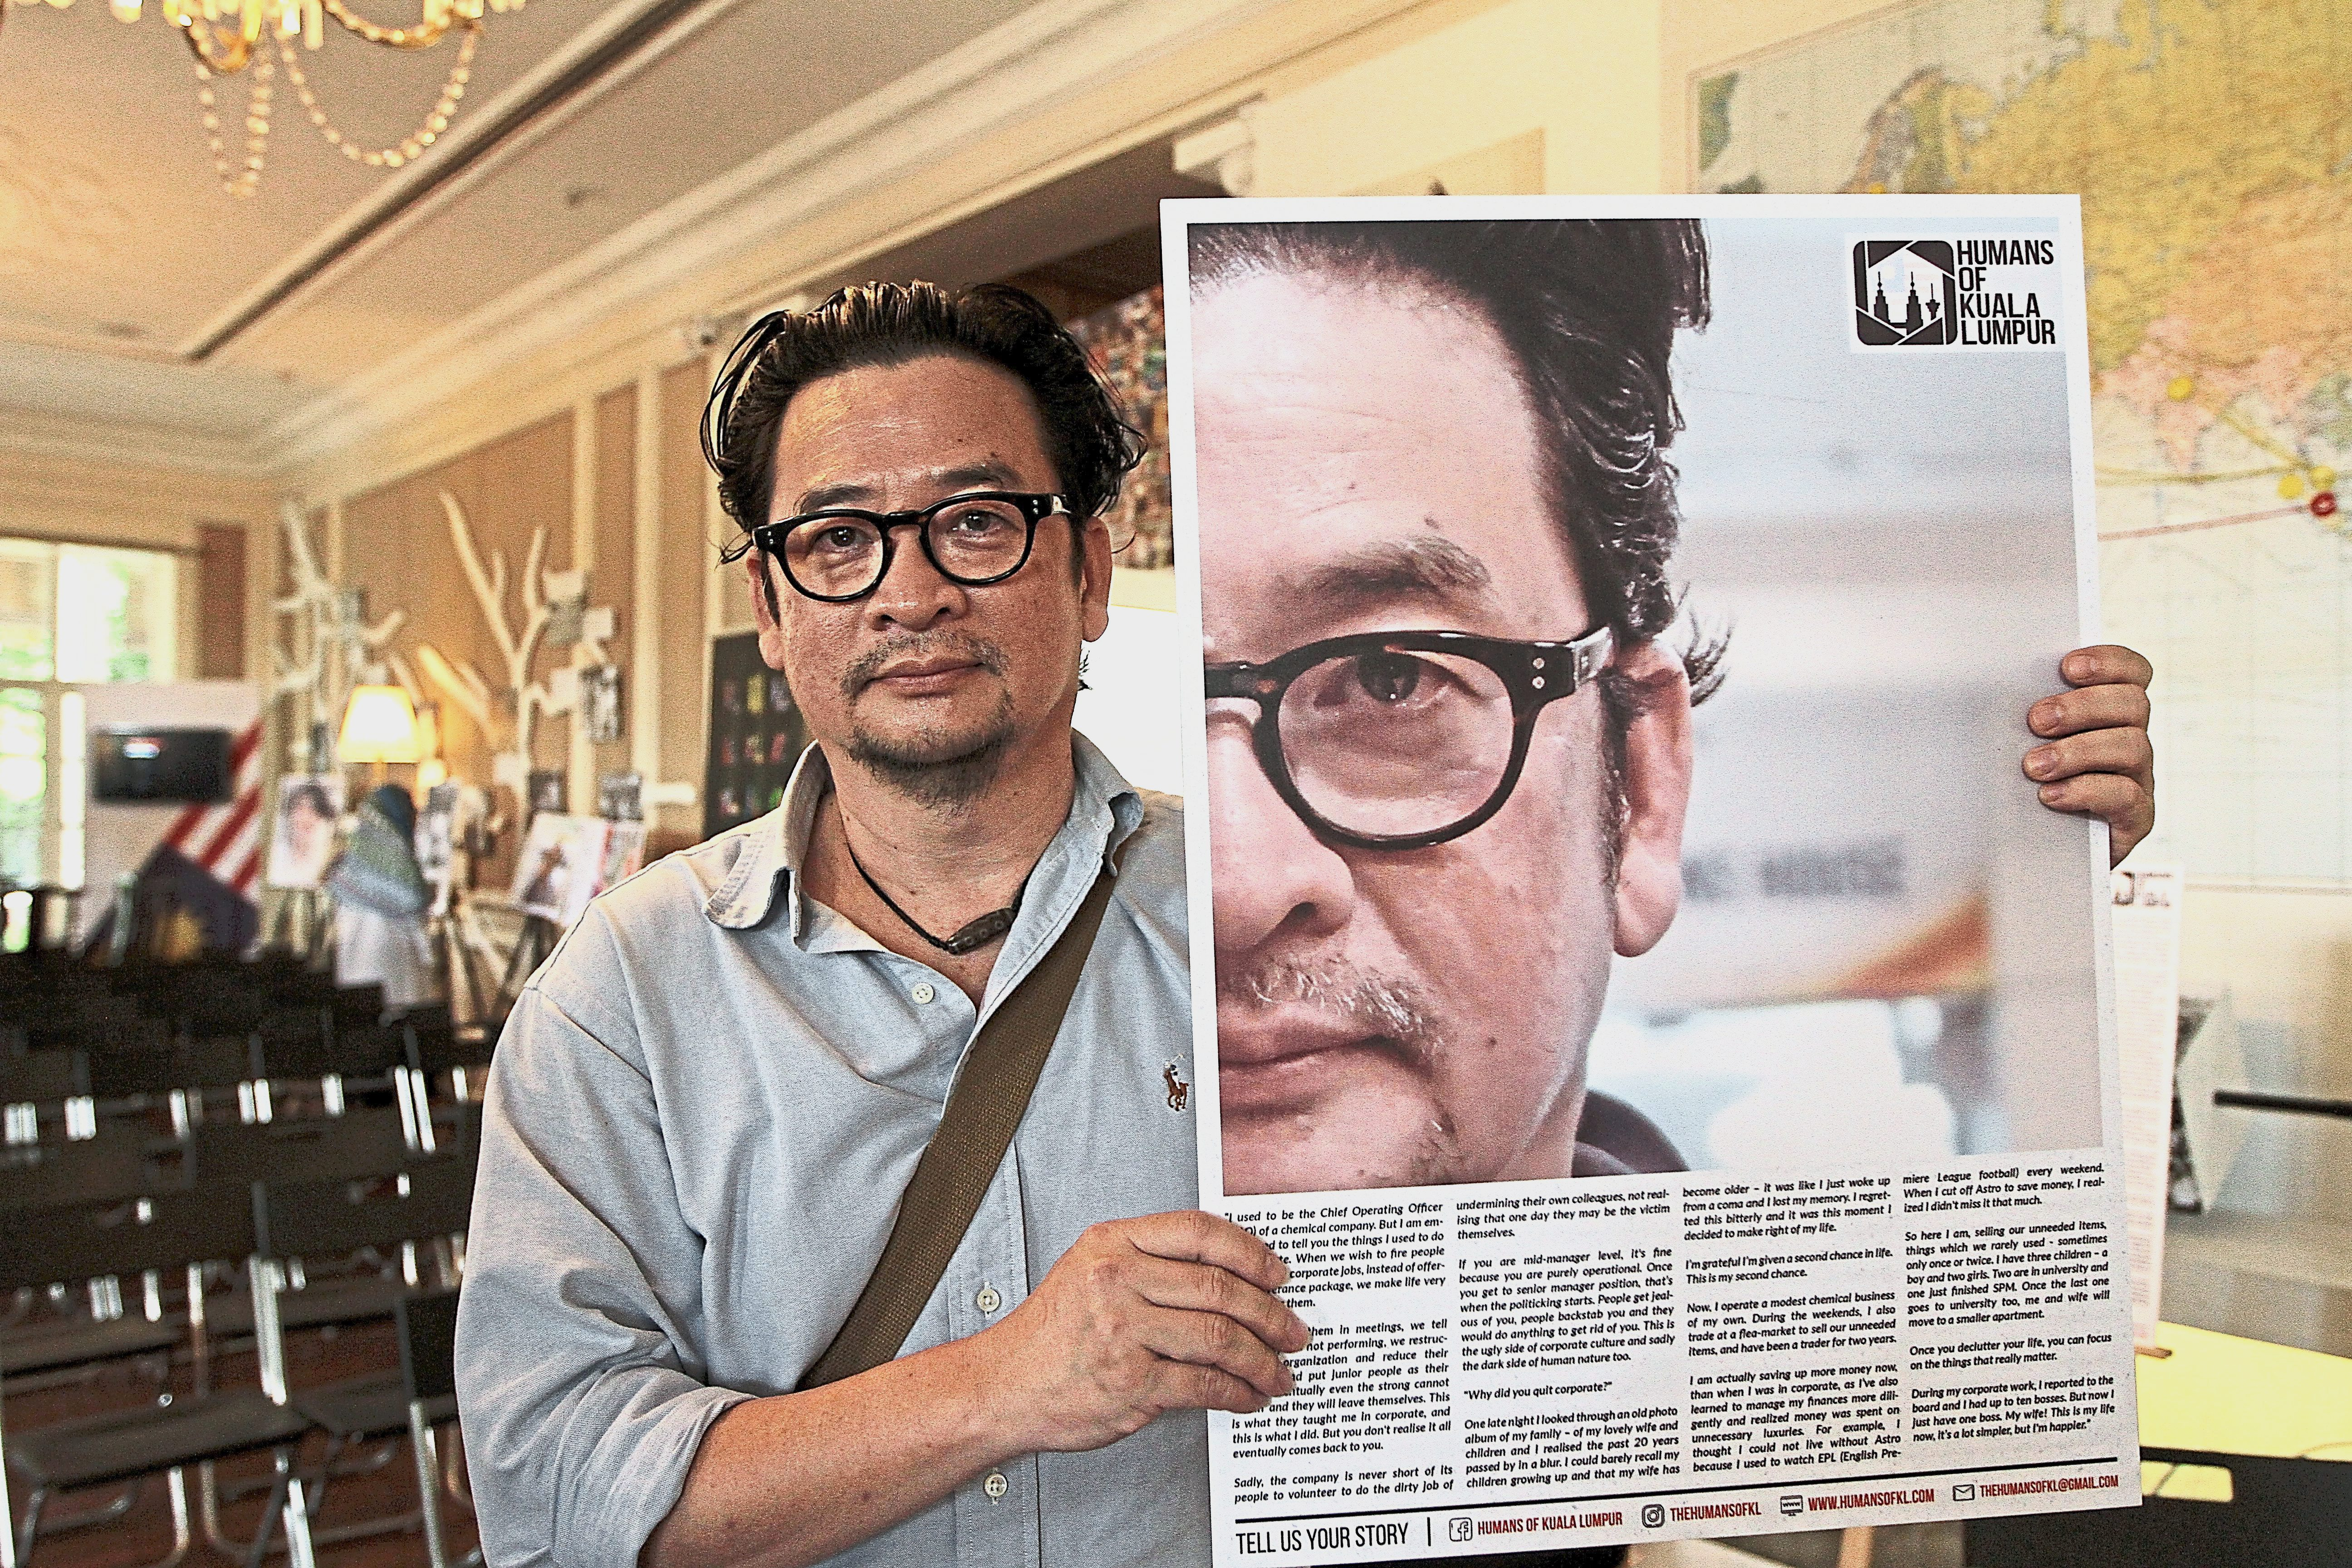 Ding showing his photo story at the exhibition.